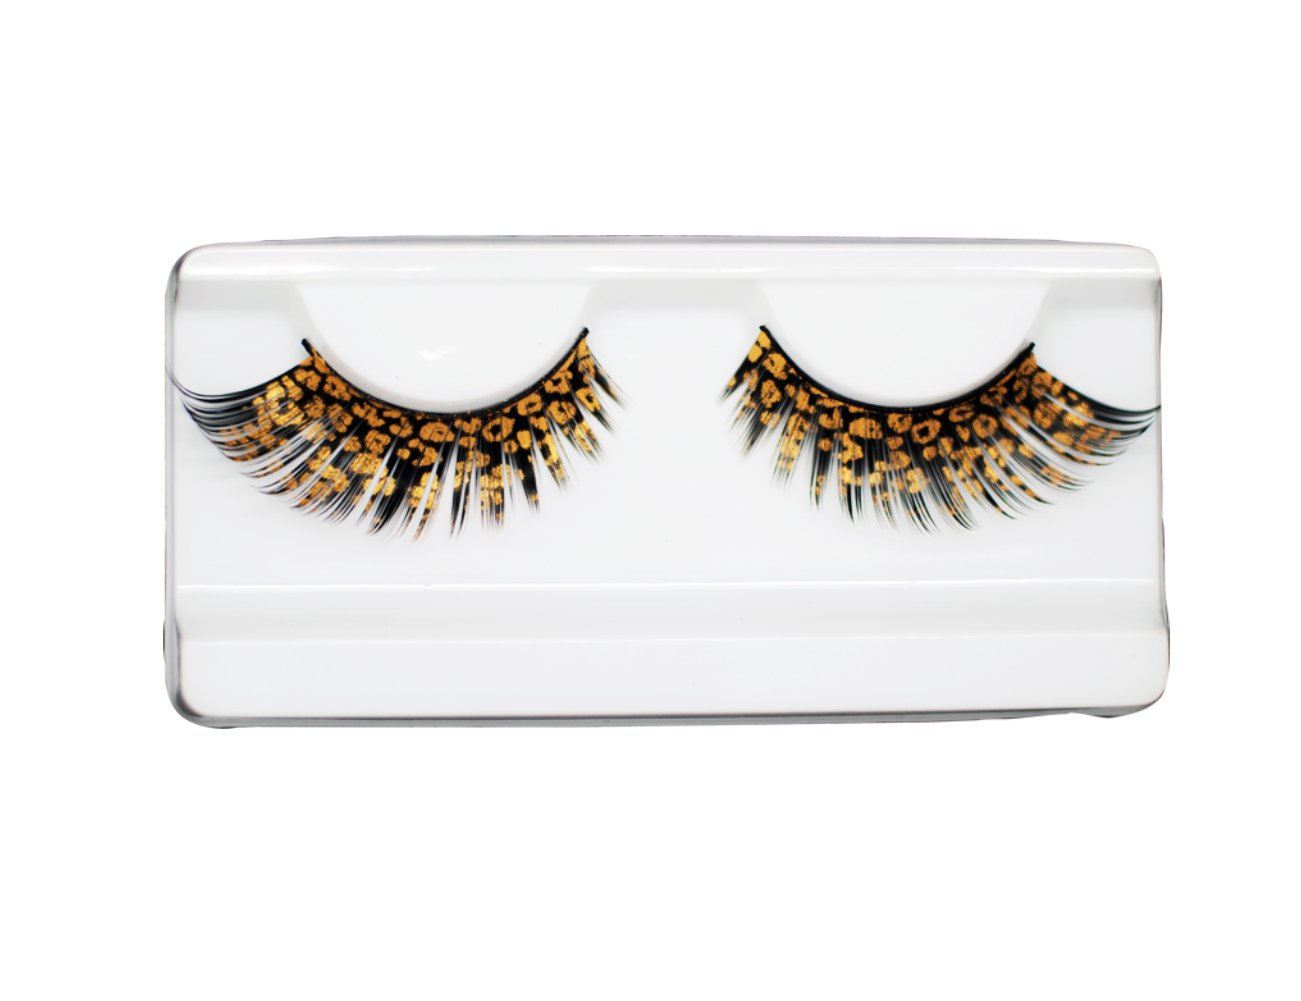 EMILYSTORES Catwoman Leopard Party Looking Eyelashes Painting Lashes 1 Pairs Golden Color